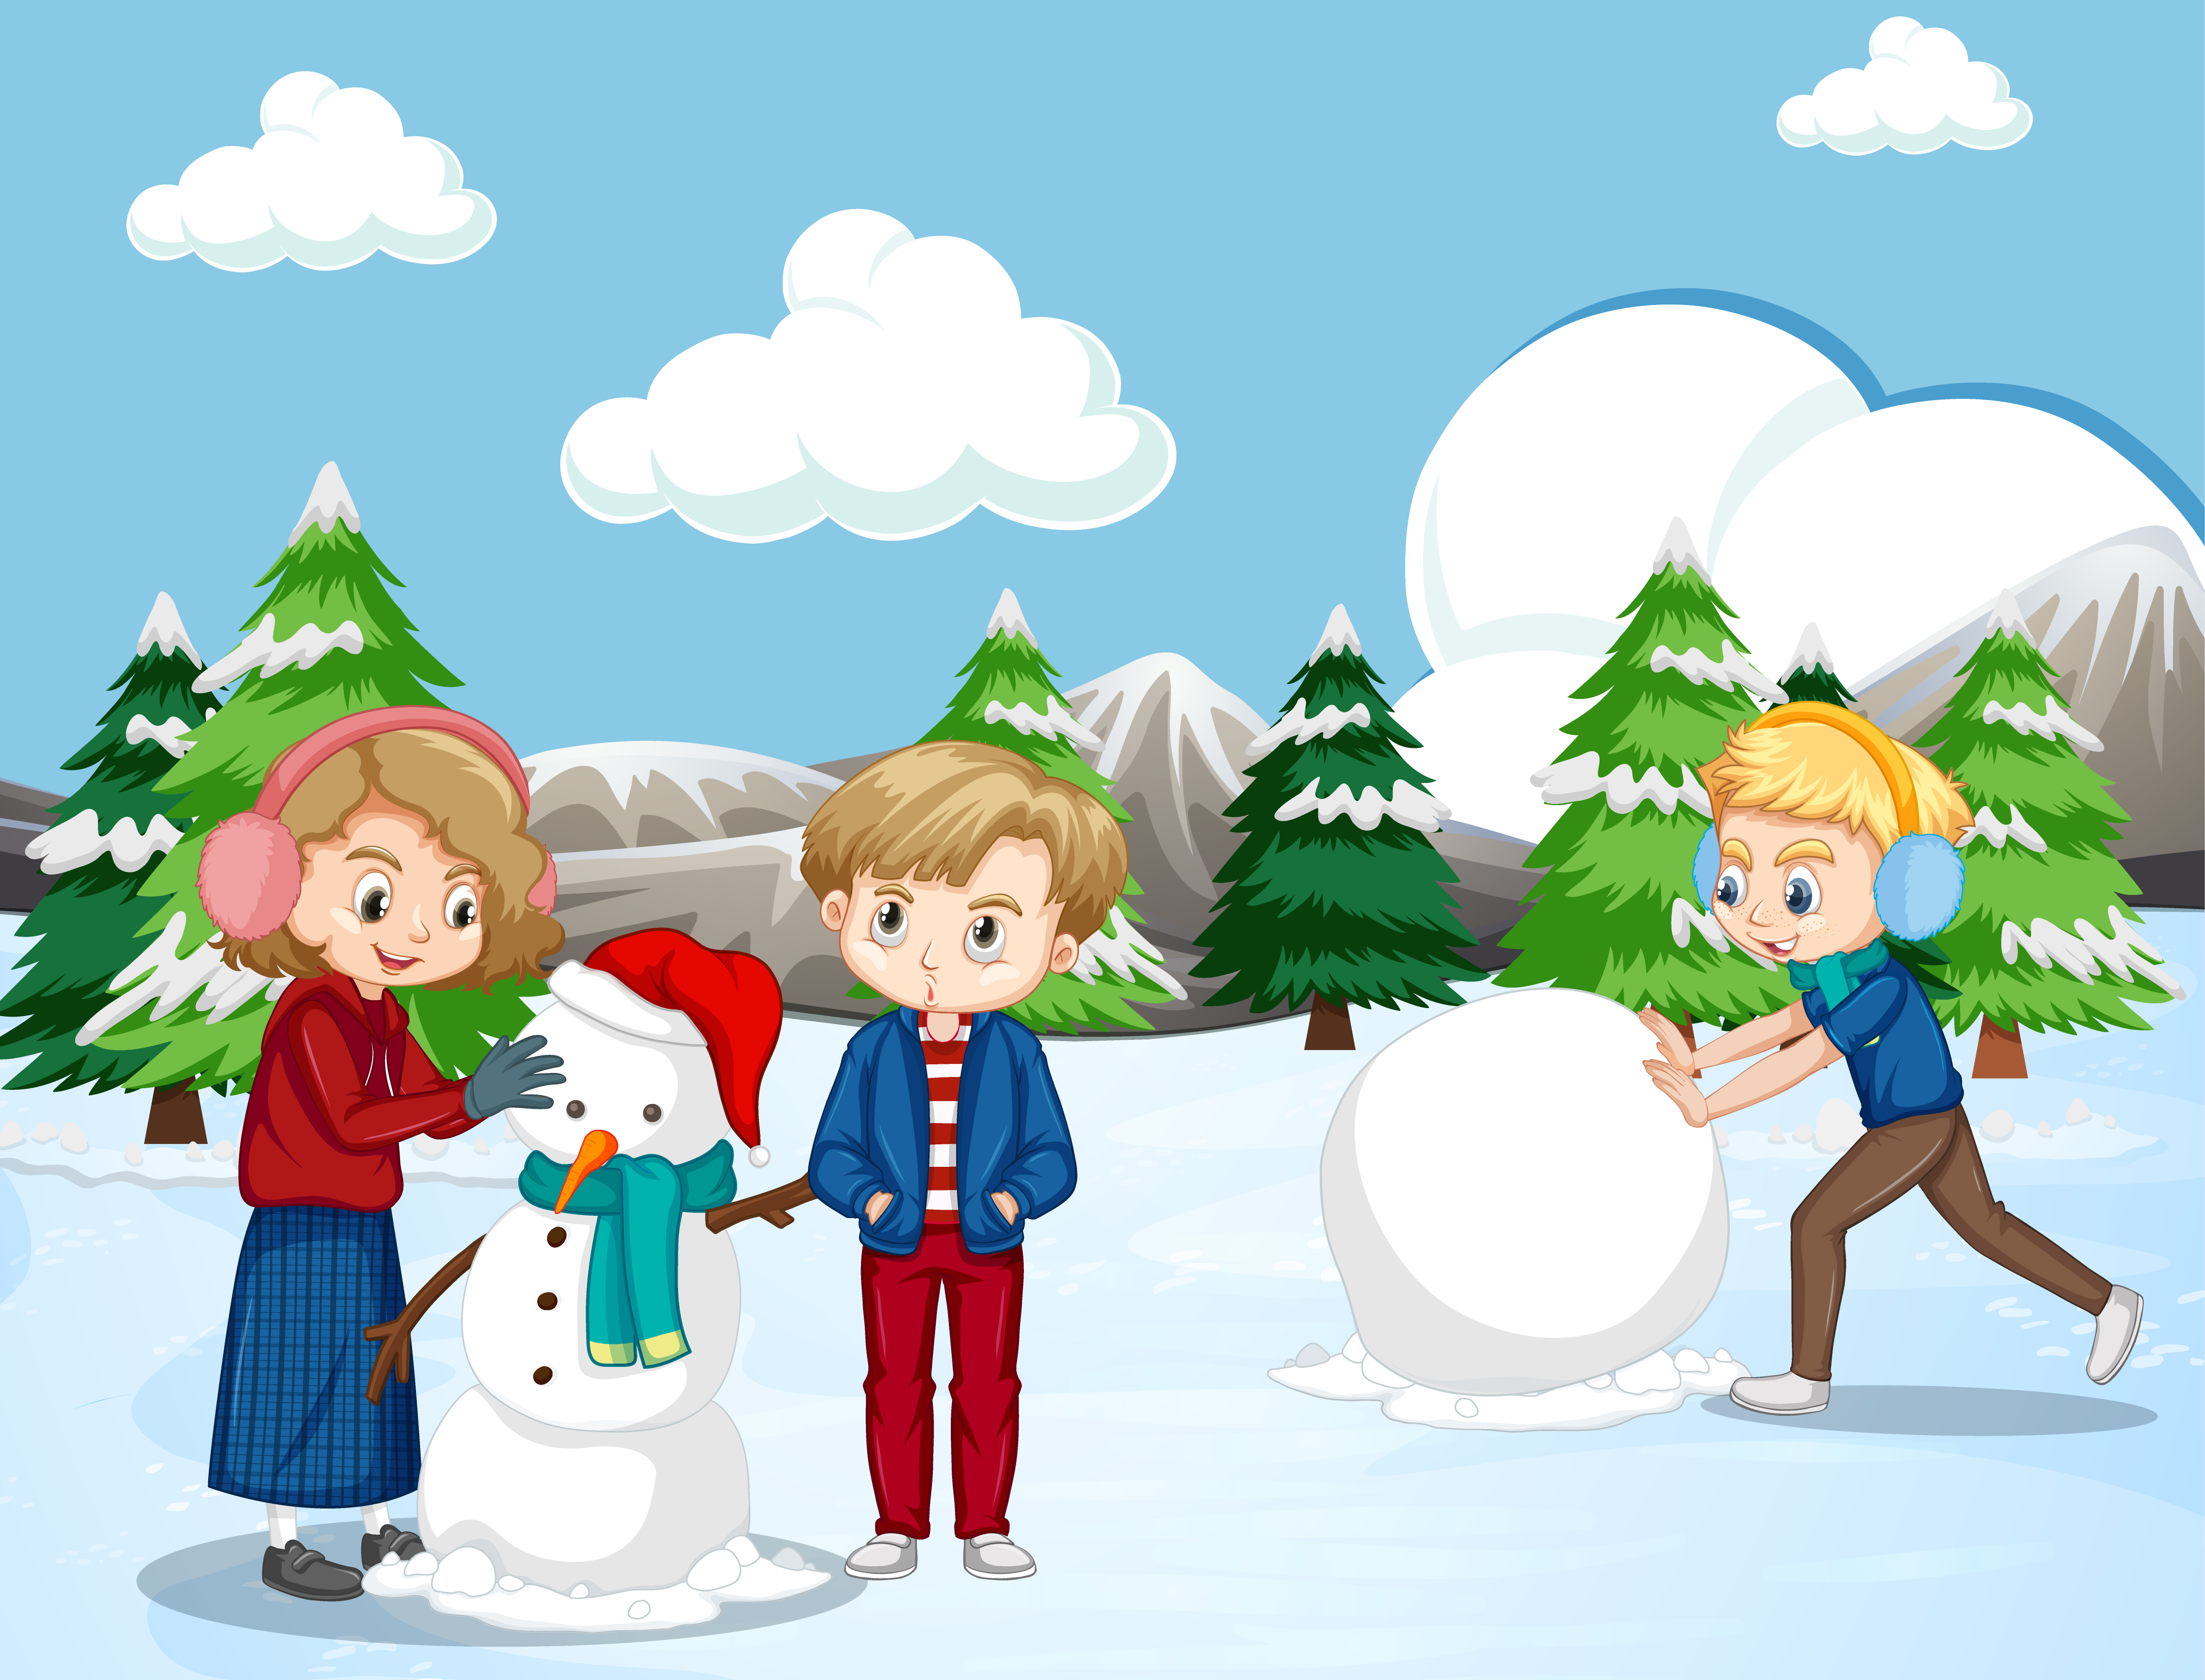 Clipart snowman, Clipart snowman Transparent FREE for download on  WebStockReview 2020